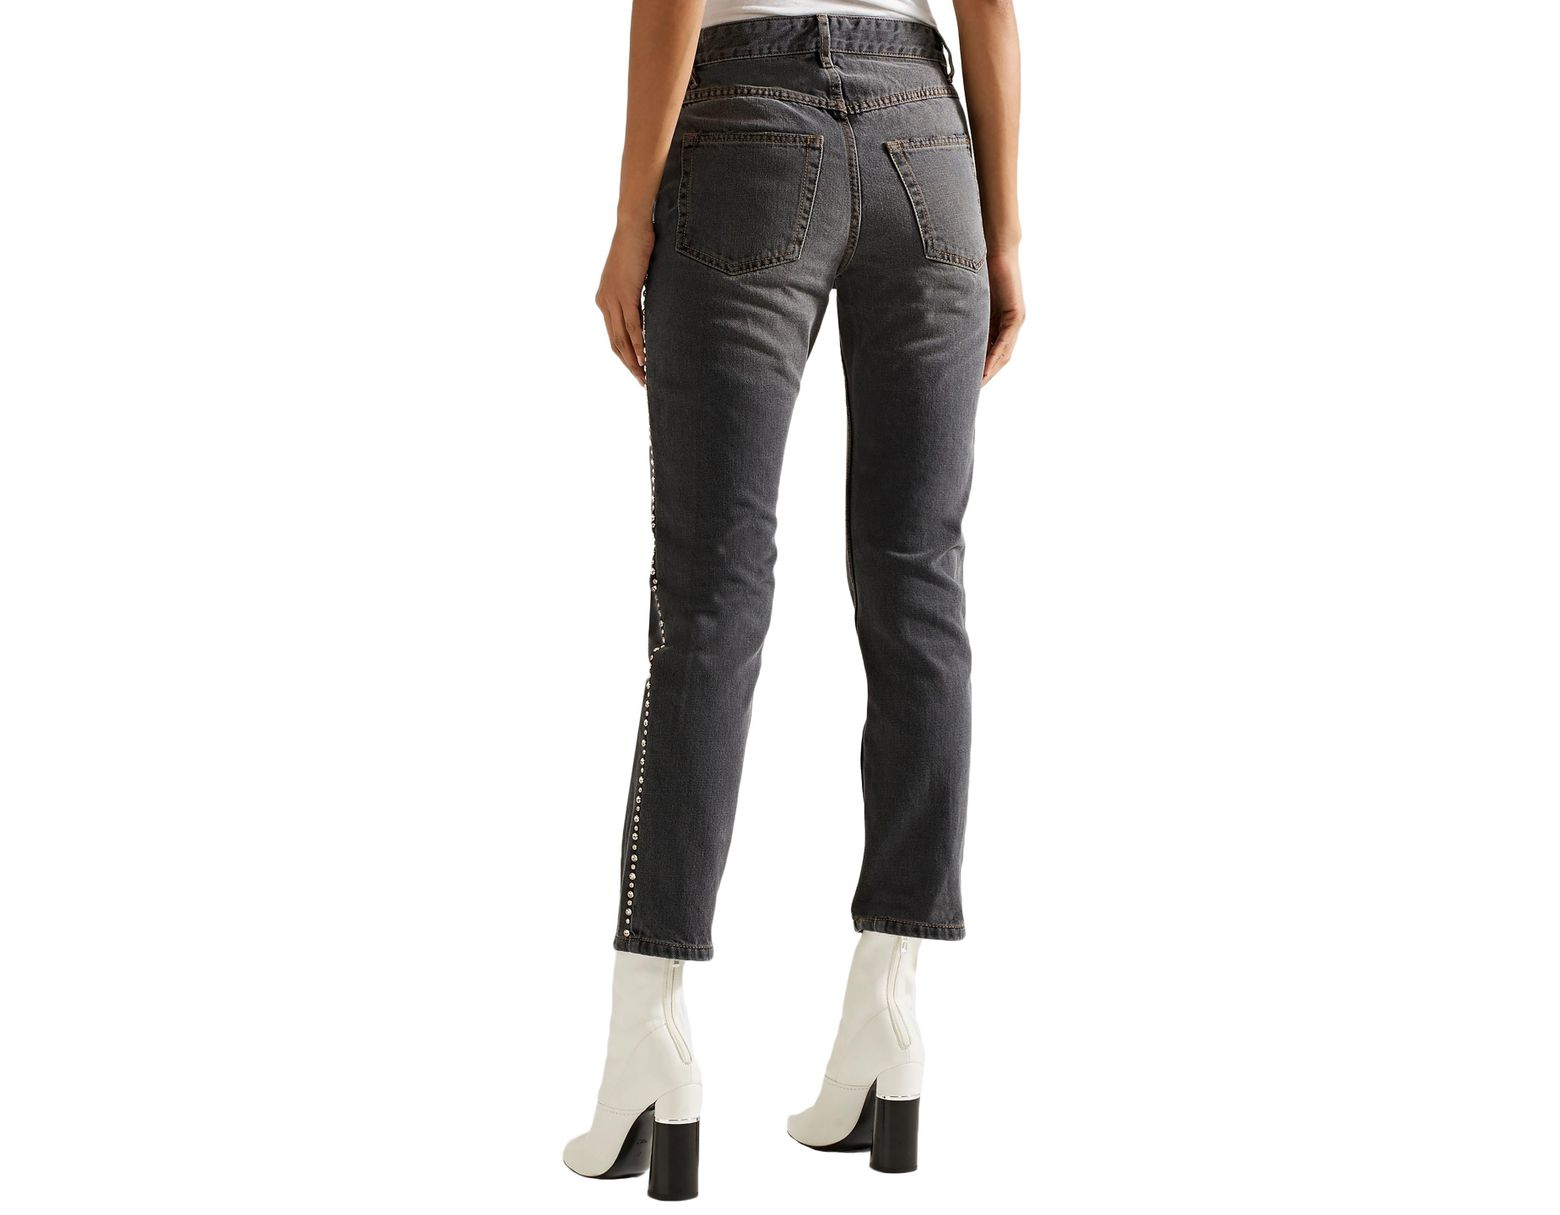 af8a63bb Isabel Marant Woman Ulyff Crystal-embellished High-rise Slim-leg Jeans Dark  Gray in Gray - Save 29% - Lyst